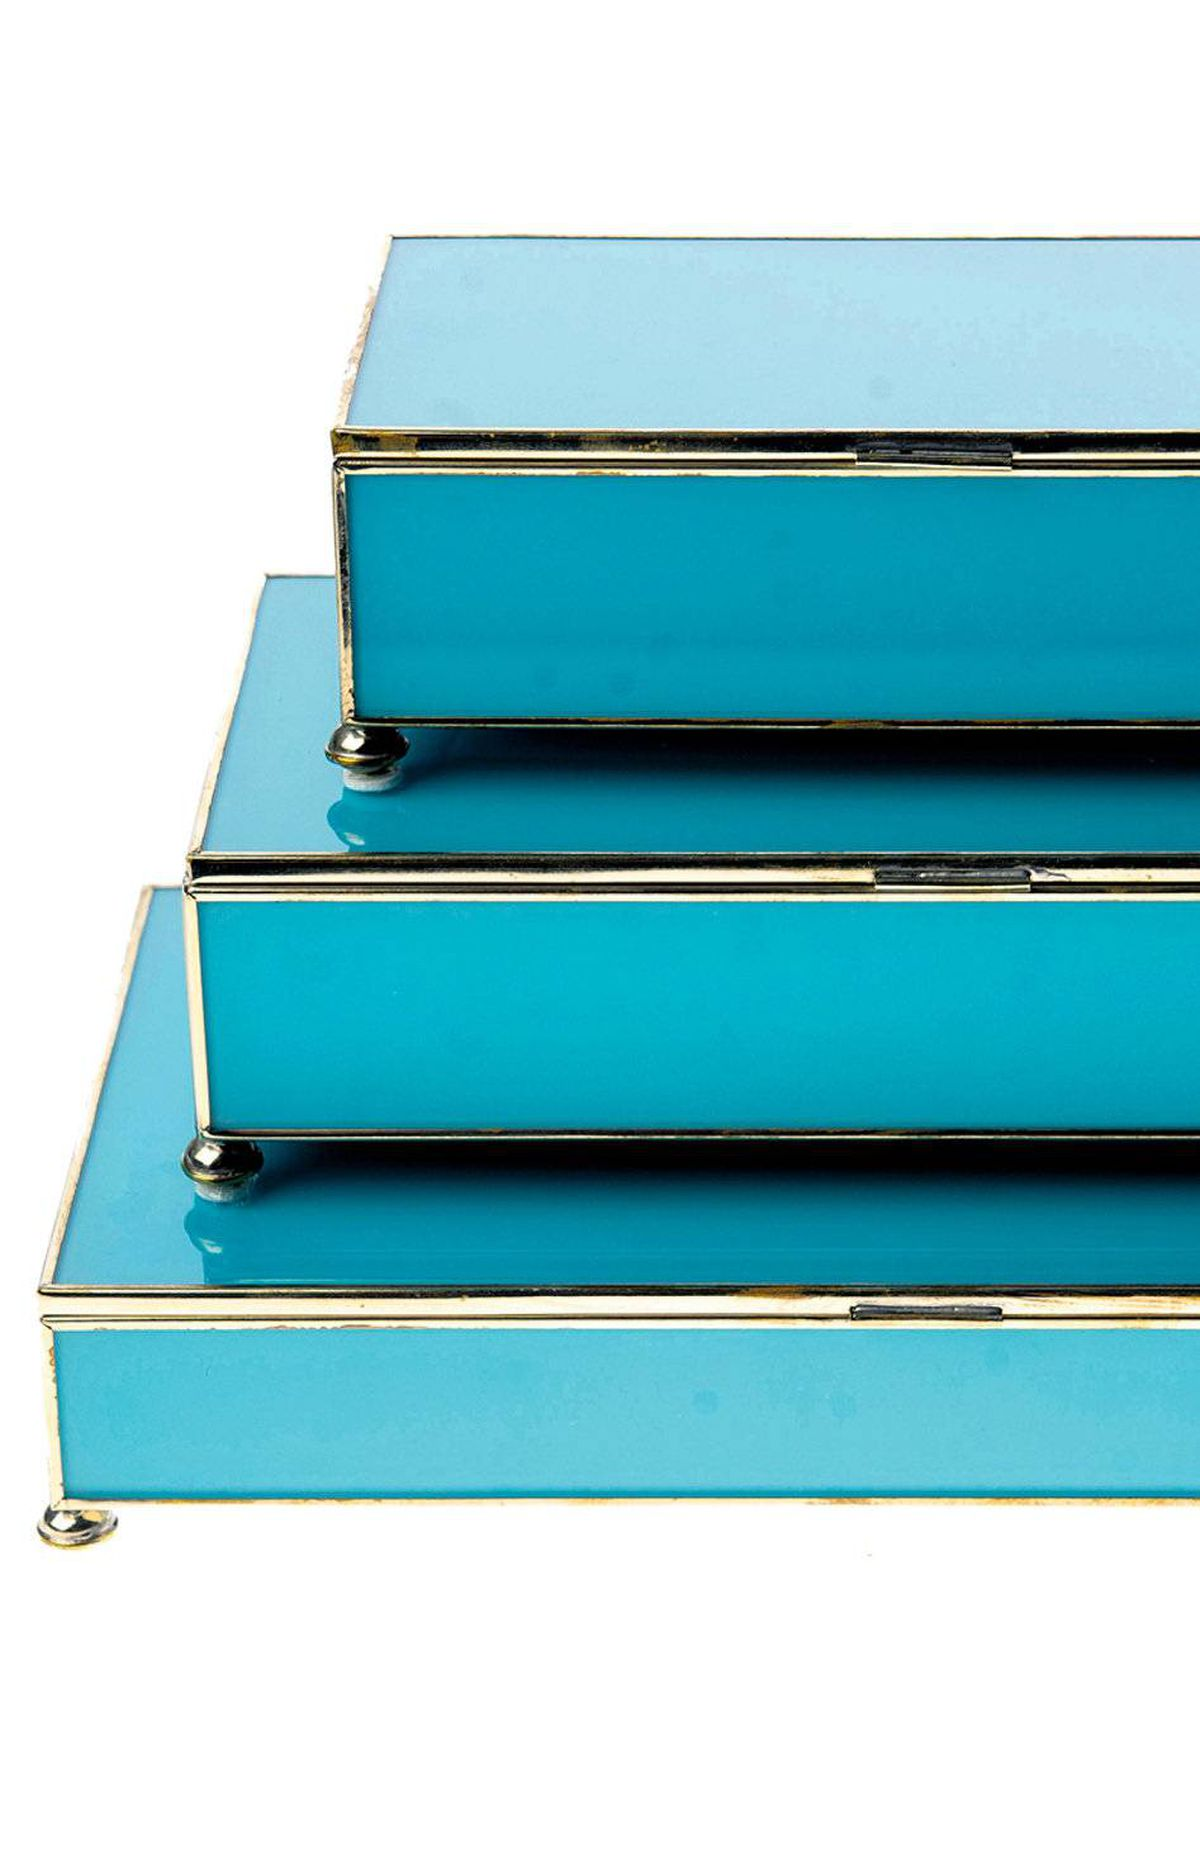 As chic as they are practical, decorative boxes both dress up bookshelves and other surfaces and hide remotes from view. 1212 glass stacking boxes in Tiffany Blue, $115 to $210 through www.1212decor.com.